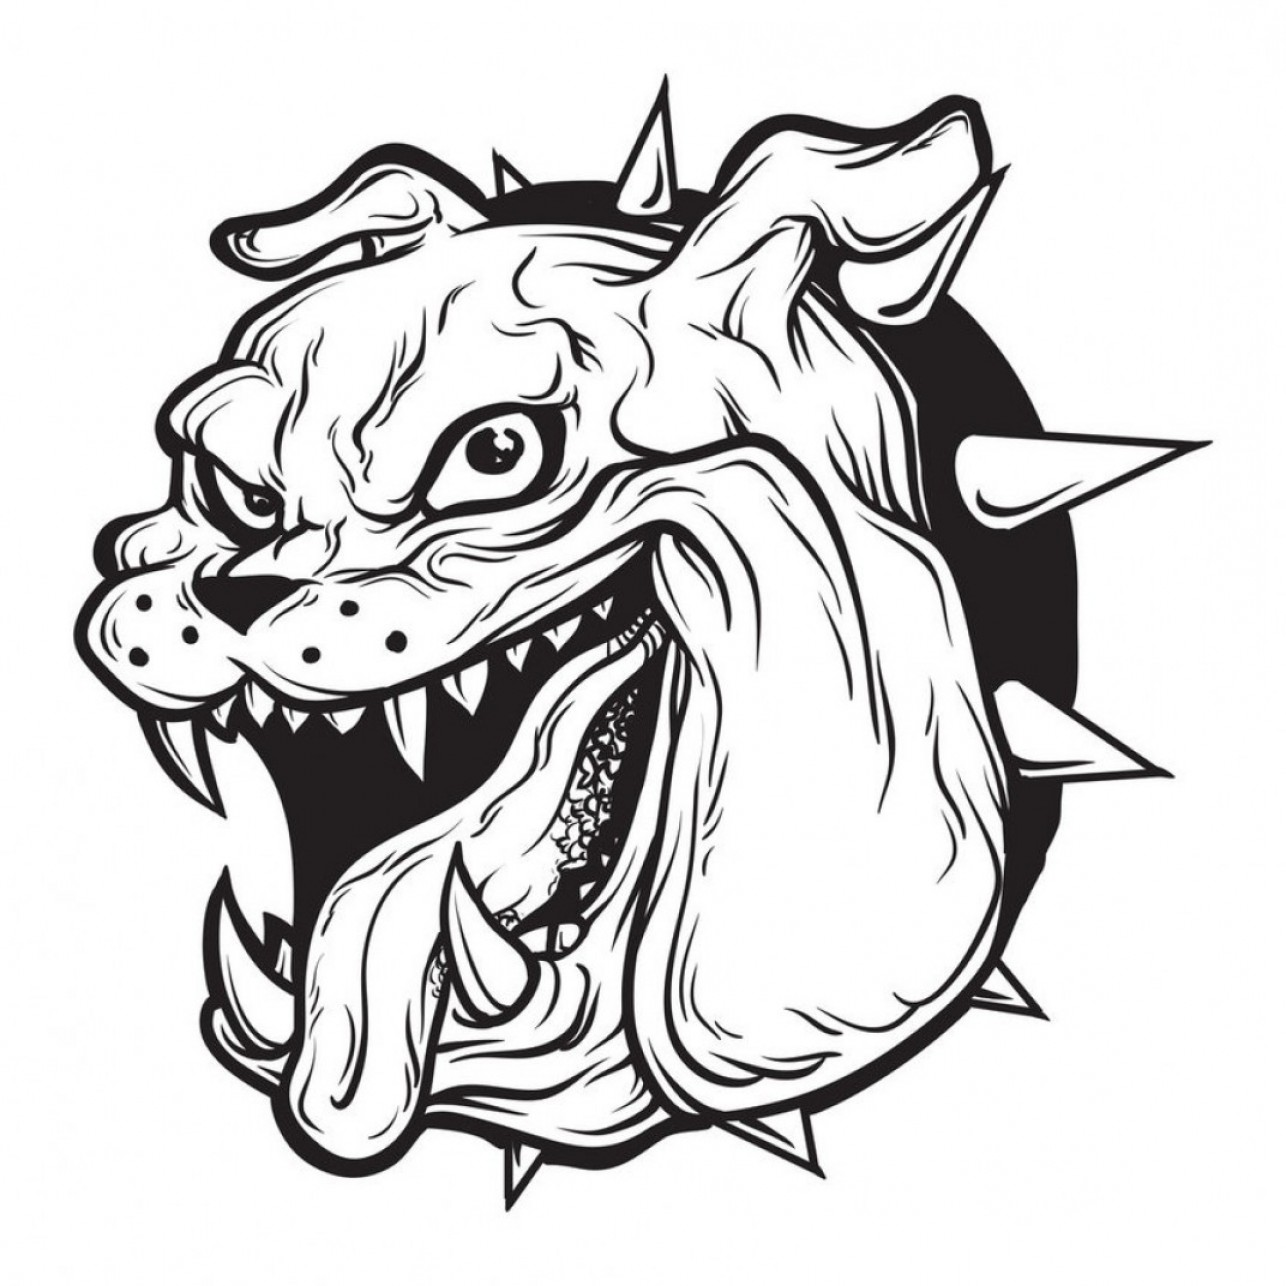 Bulldog head breaking out clipart black and white black and white download Graffiti Bull Dog Character Bulldog Vector Art Free Download Clip ... black and white download